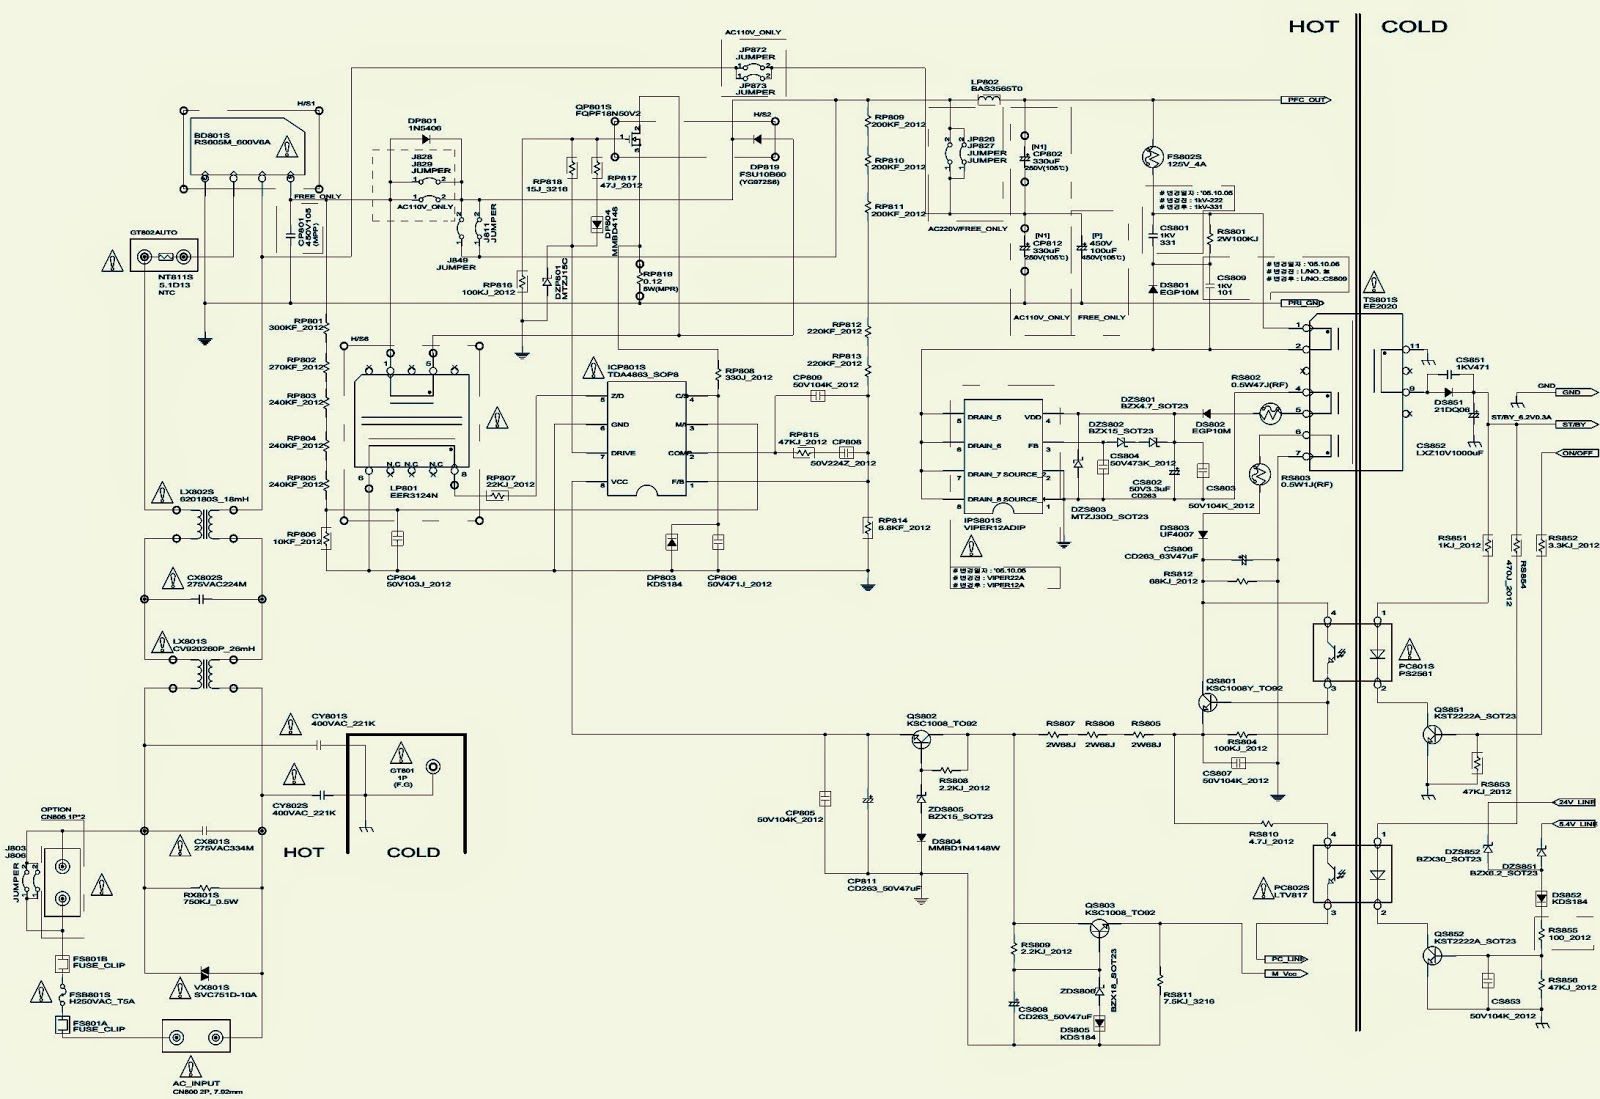 Circuit Diagram For Samsung Plasma Tv Auto Electrical Wiring Samsungpowerboardcircuitbn44 00339b Pdf Diagramas De Lcd Smps Bn96 0b